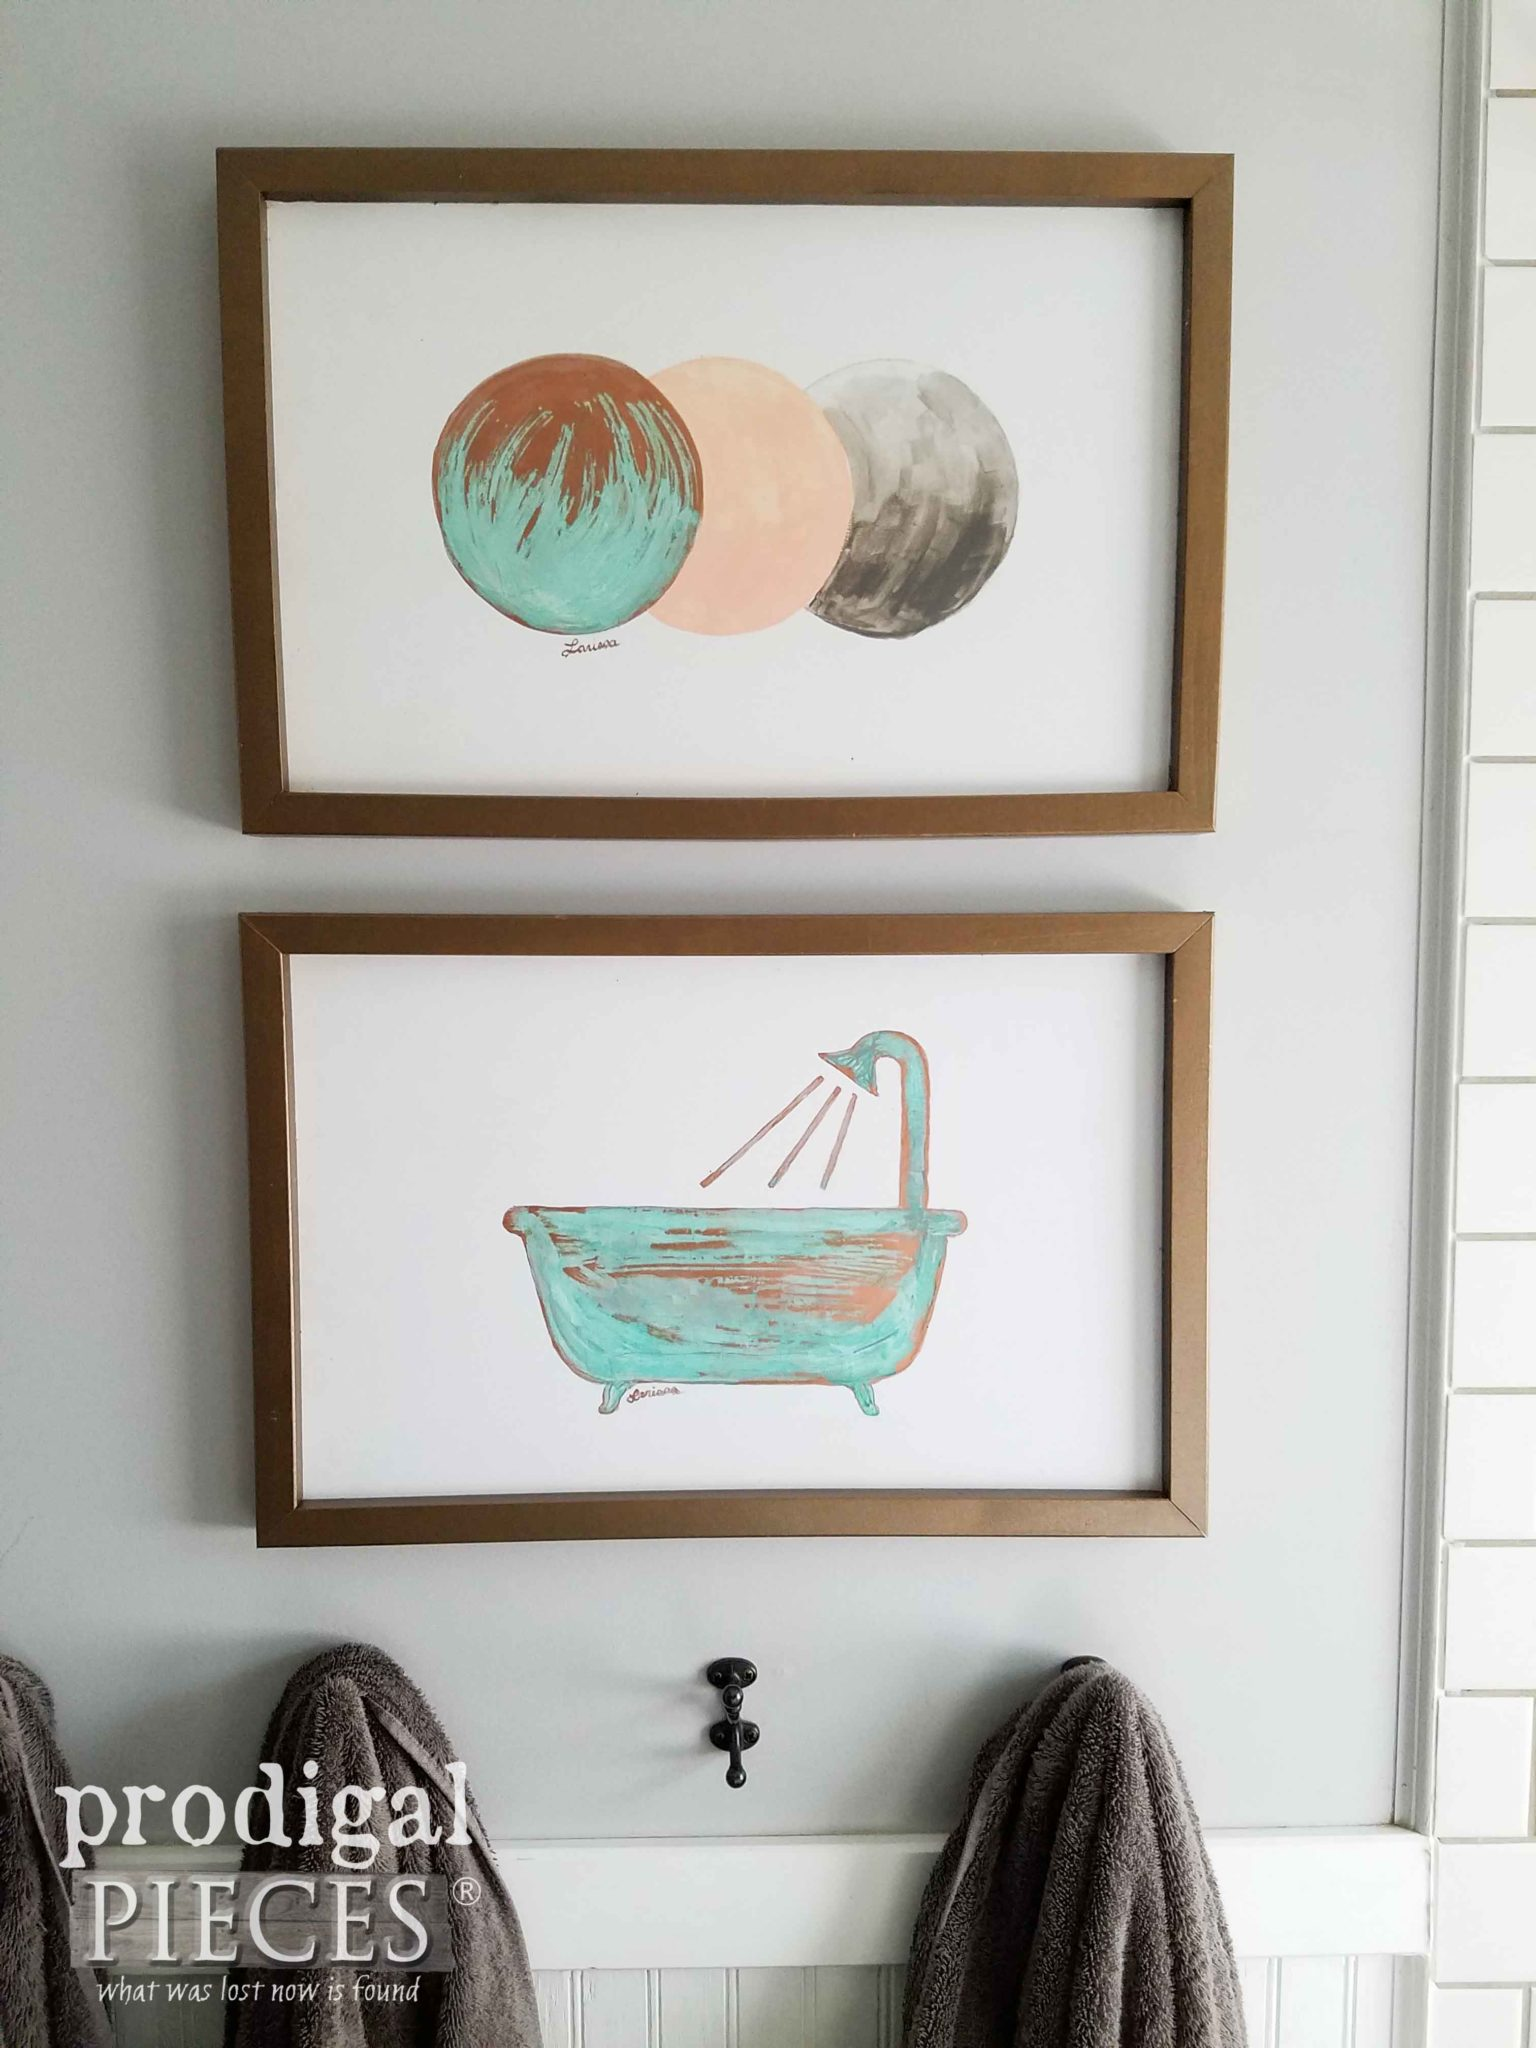 DIY Copper Wall Art made from Upcycled Bed Rails by Prodigal Pieces | prodiglapieces.com